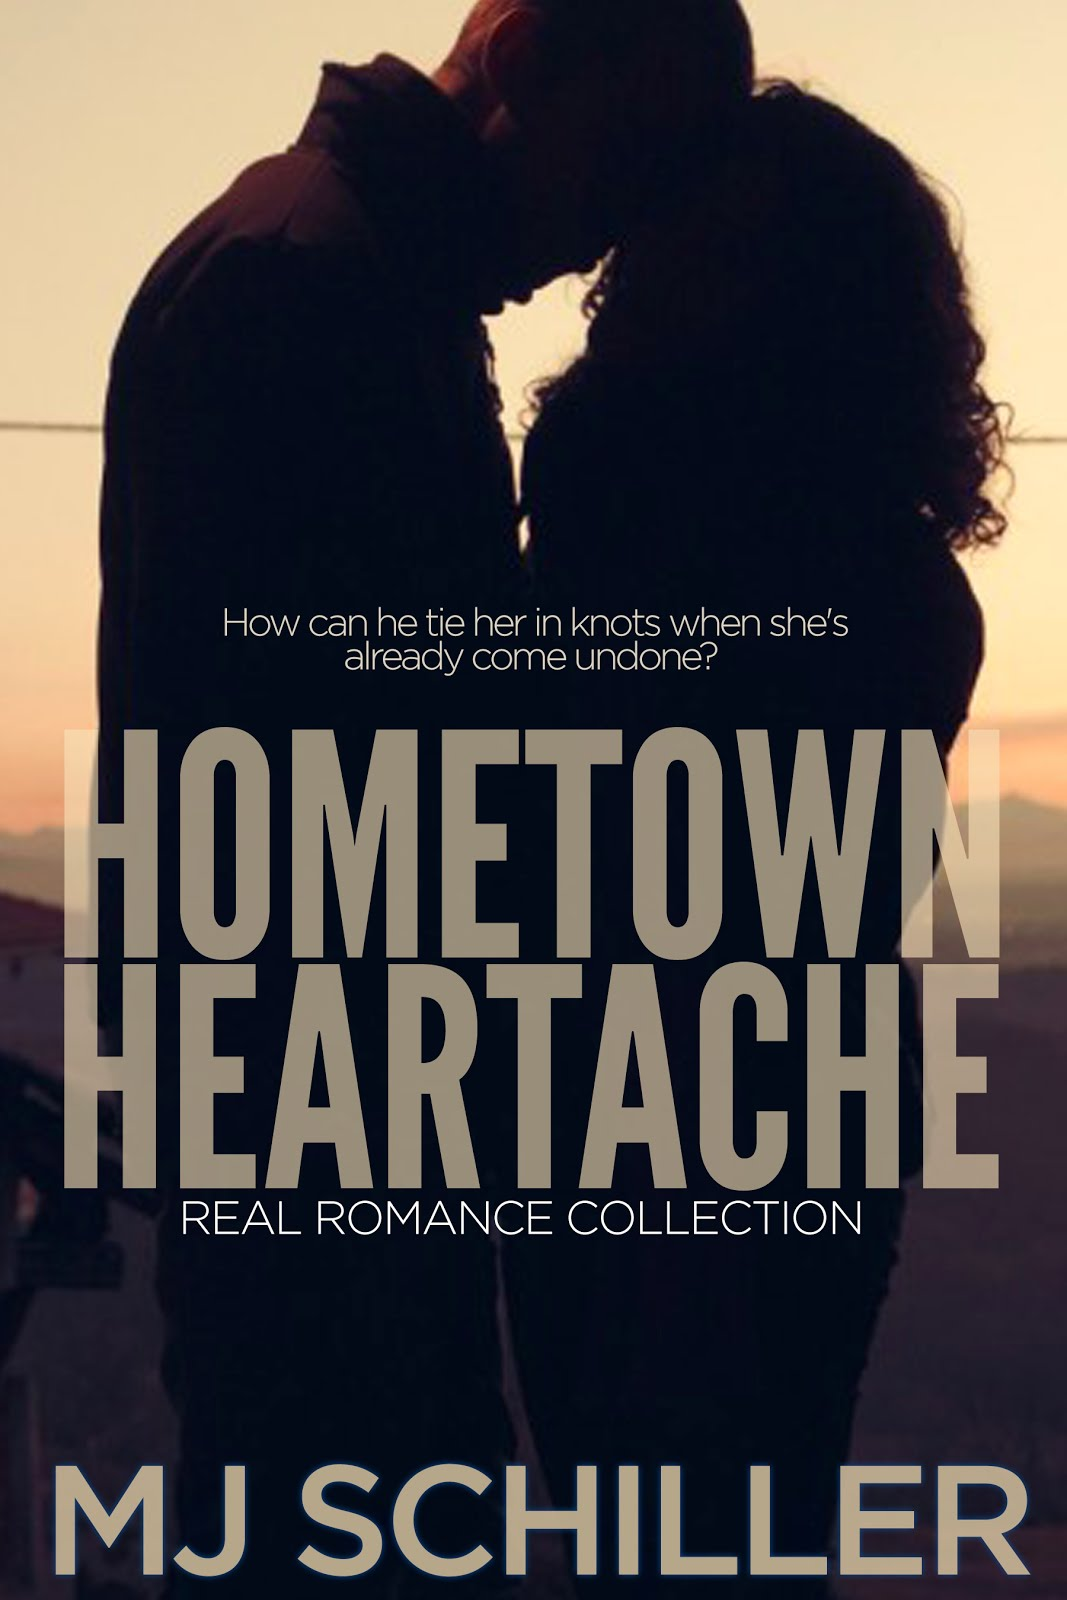 Hometown Heartache